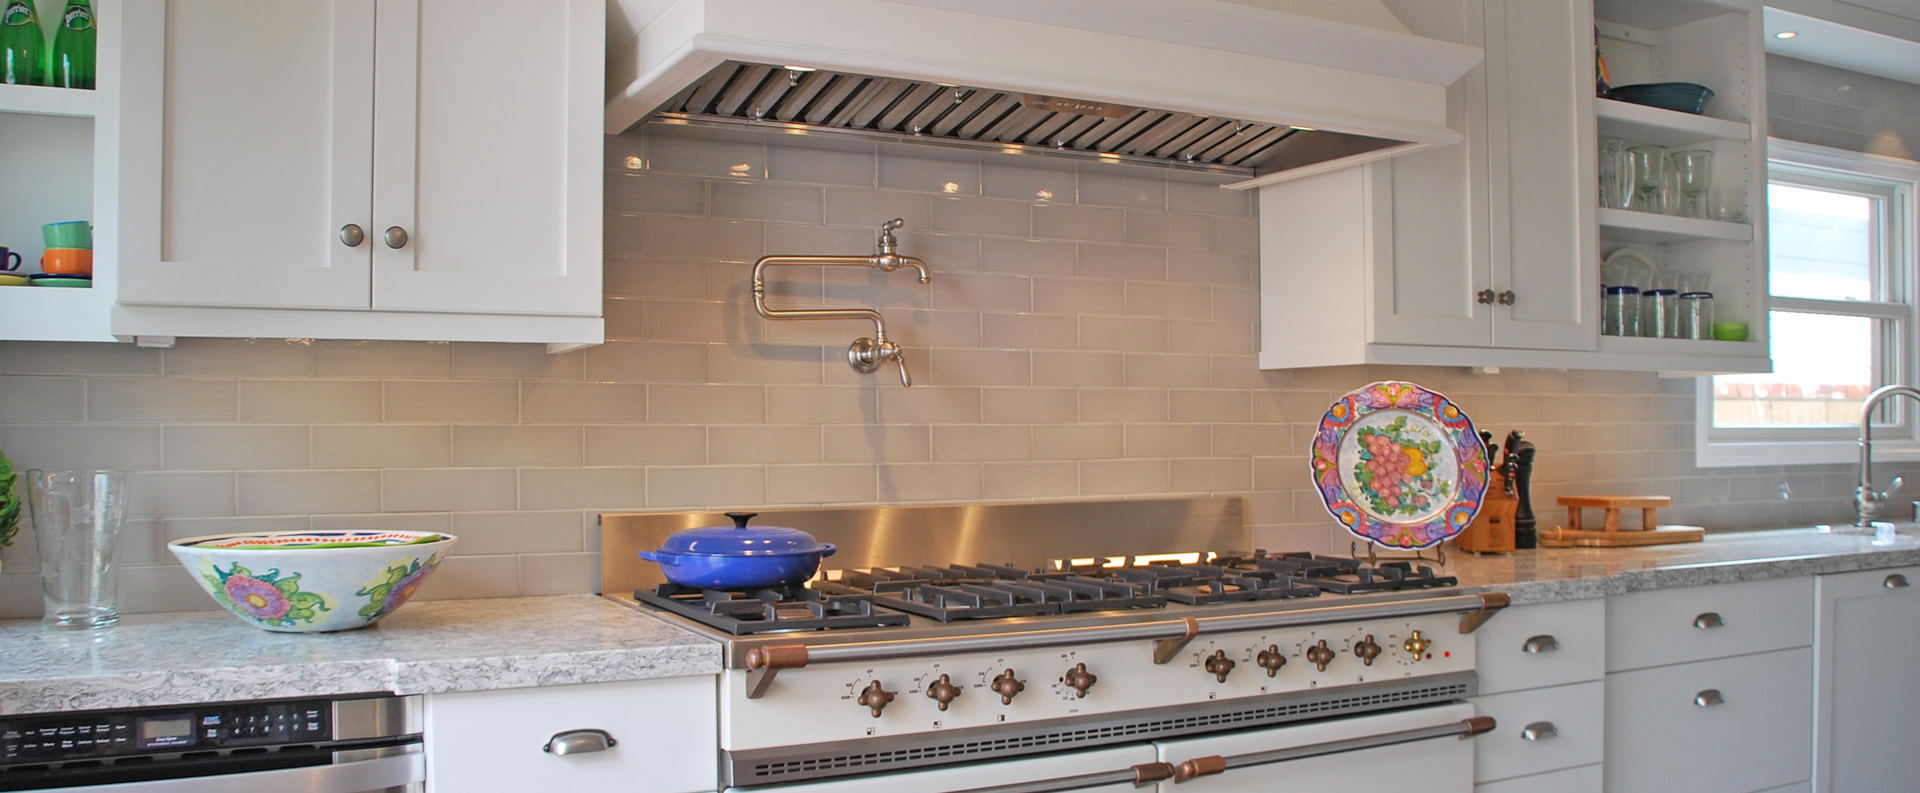 Kitchen design with tile backsplash